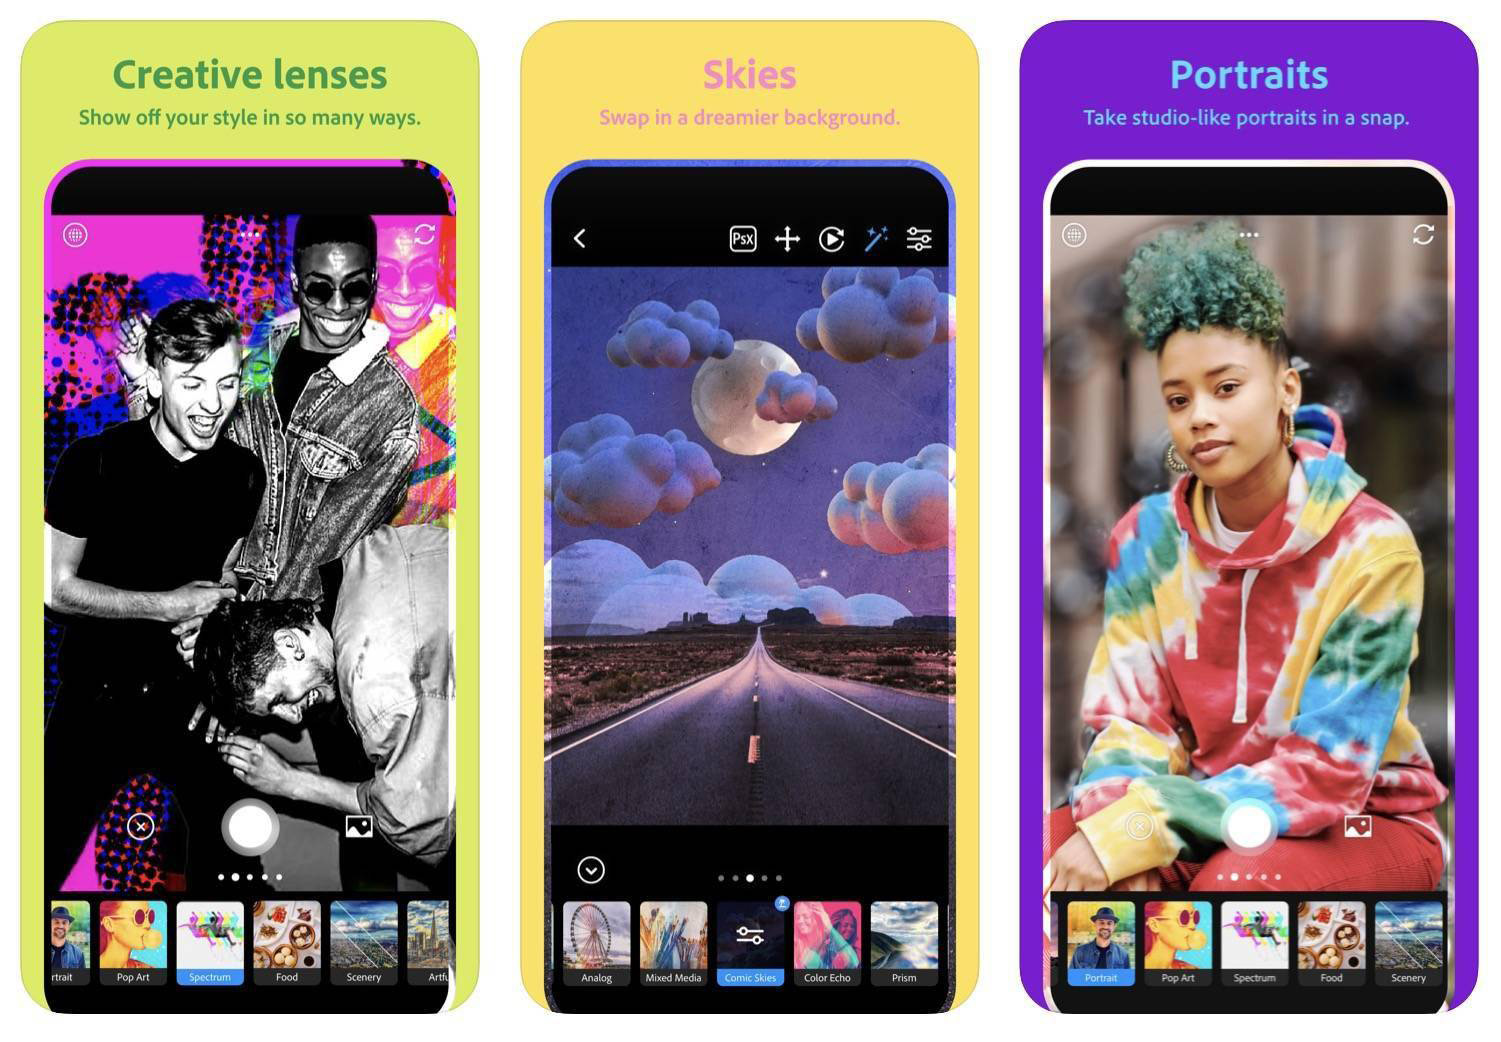 Adobe Launches 'Photoshop Camera' App on iPhone